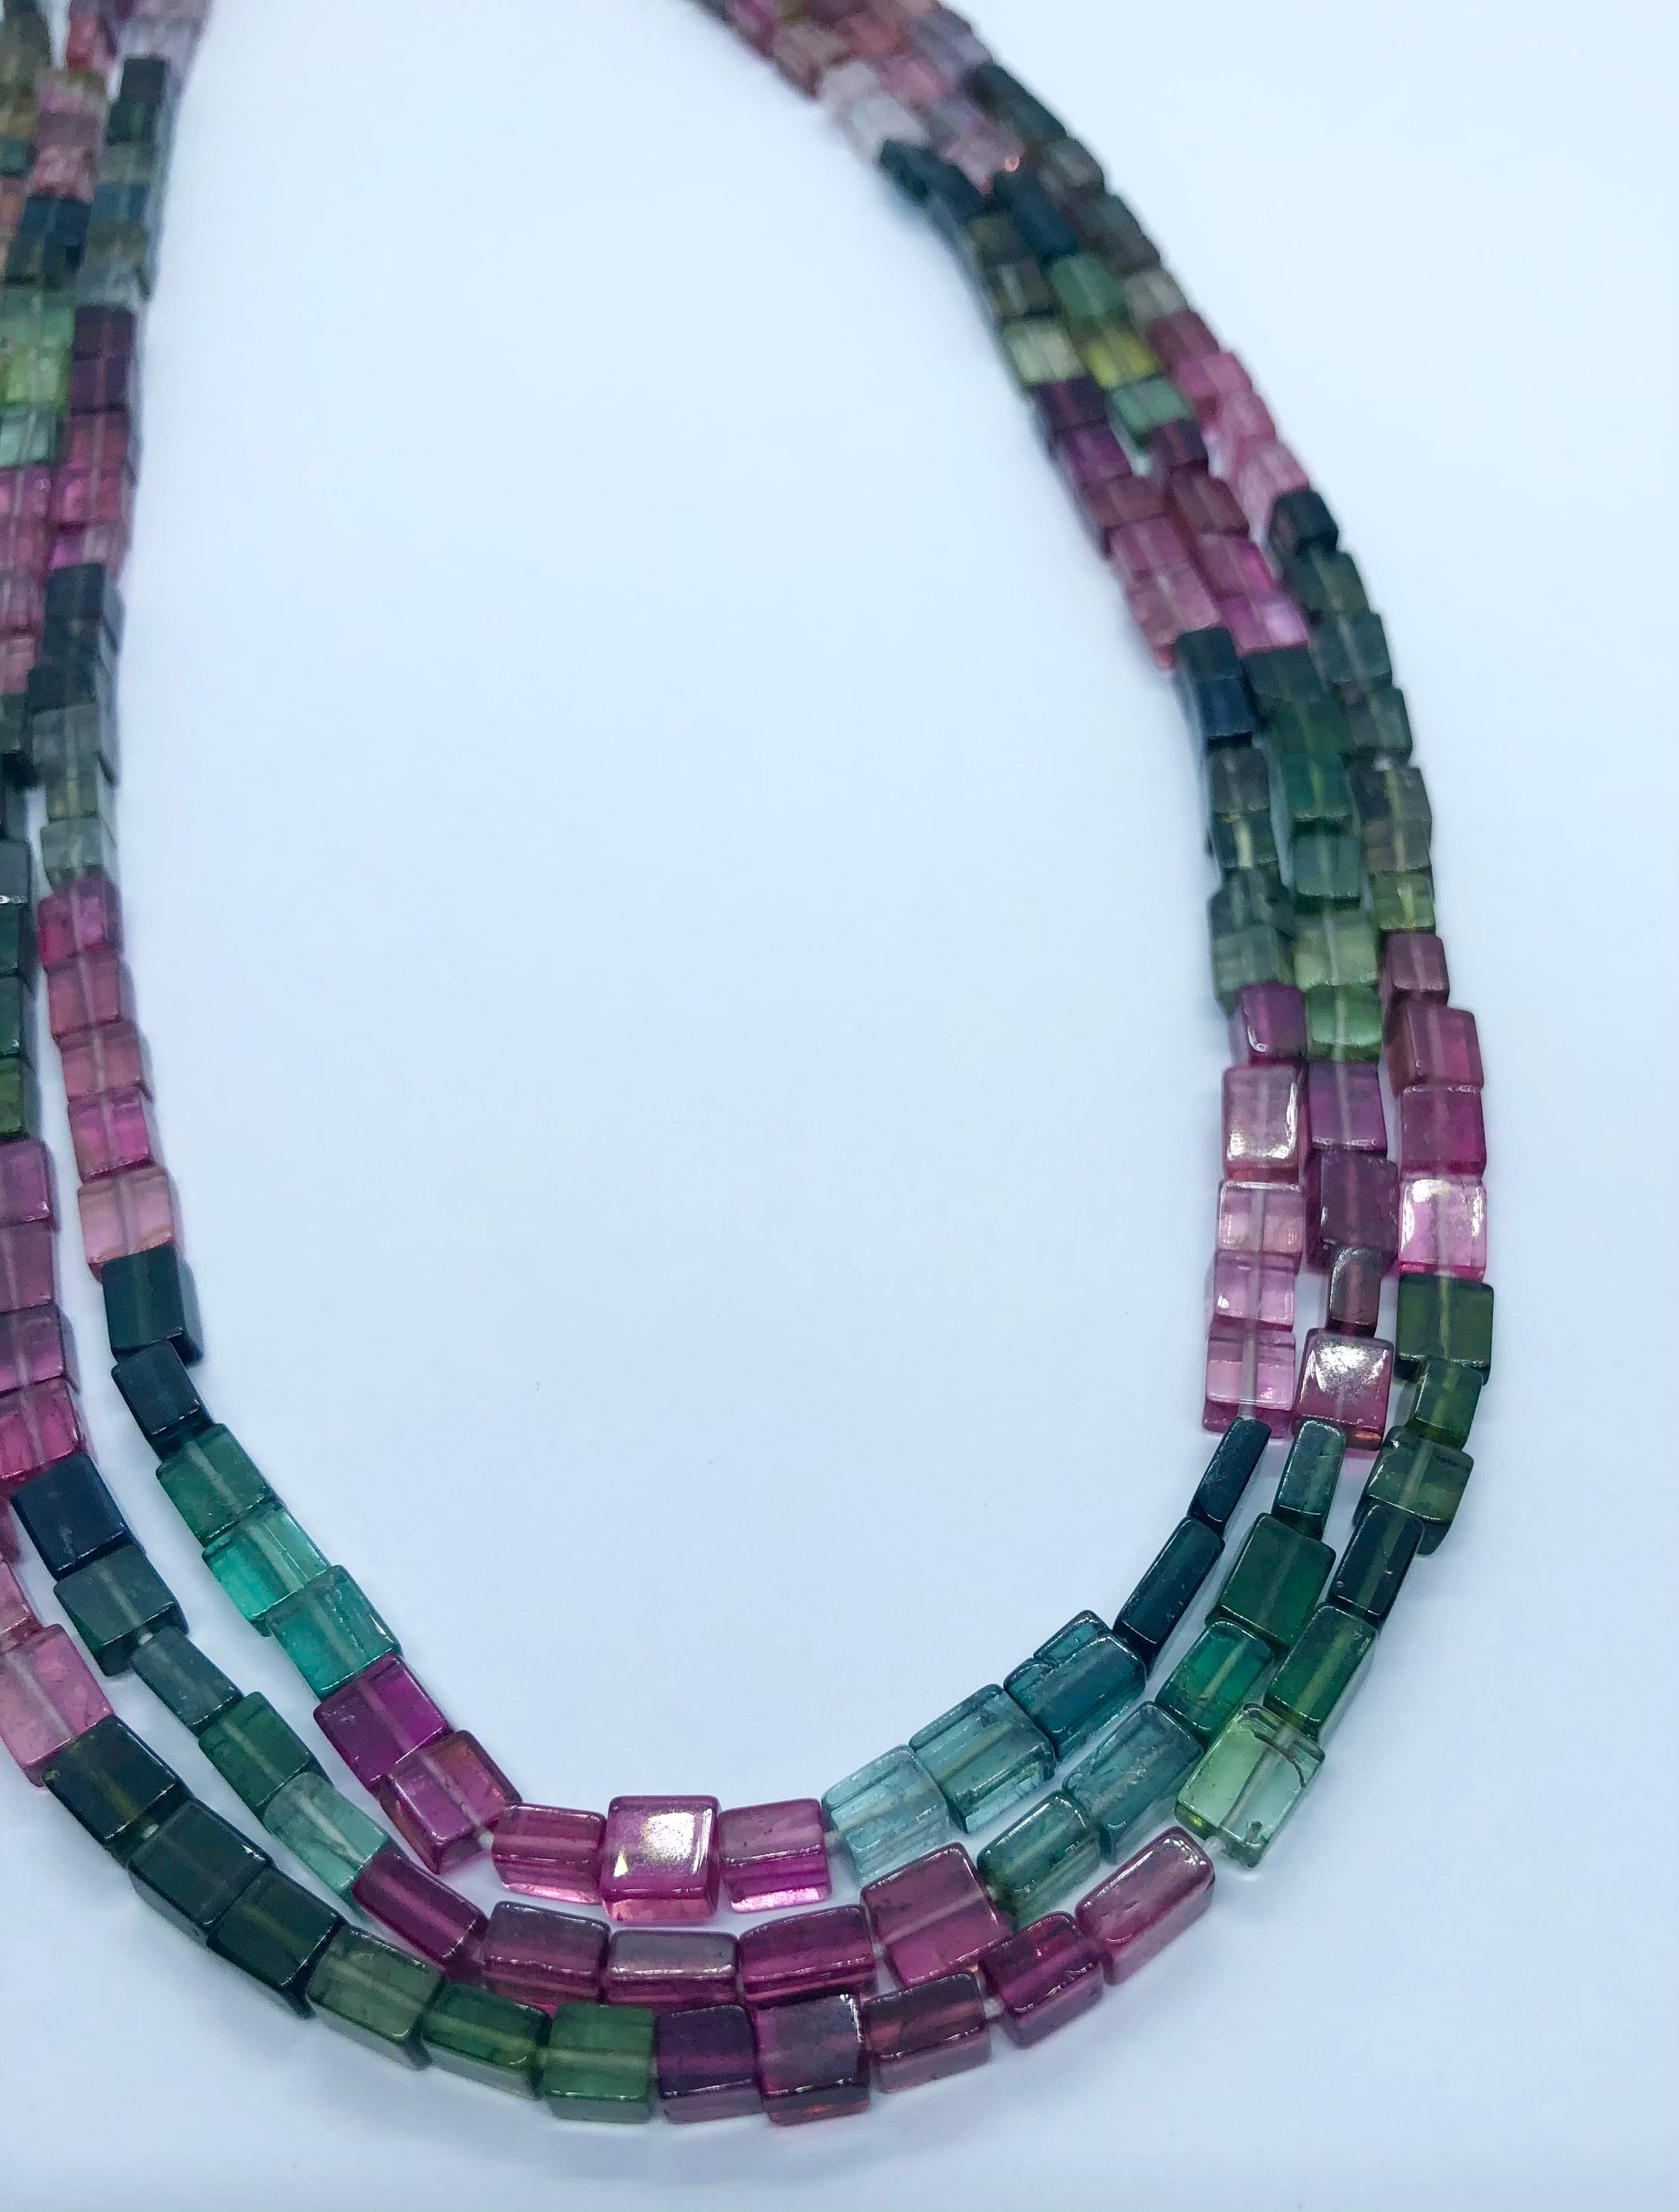 Watermelon Tourmaline Smooth Cube shape beads 4-5 MM